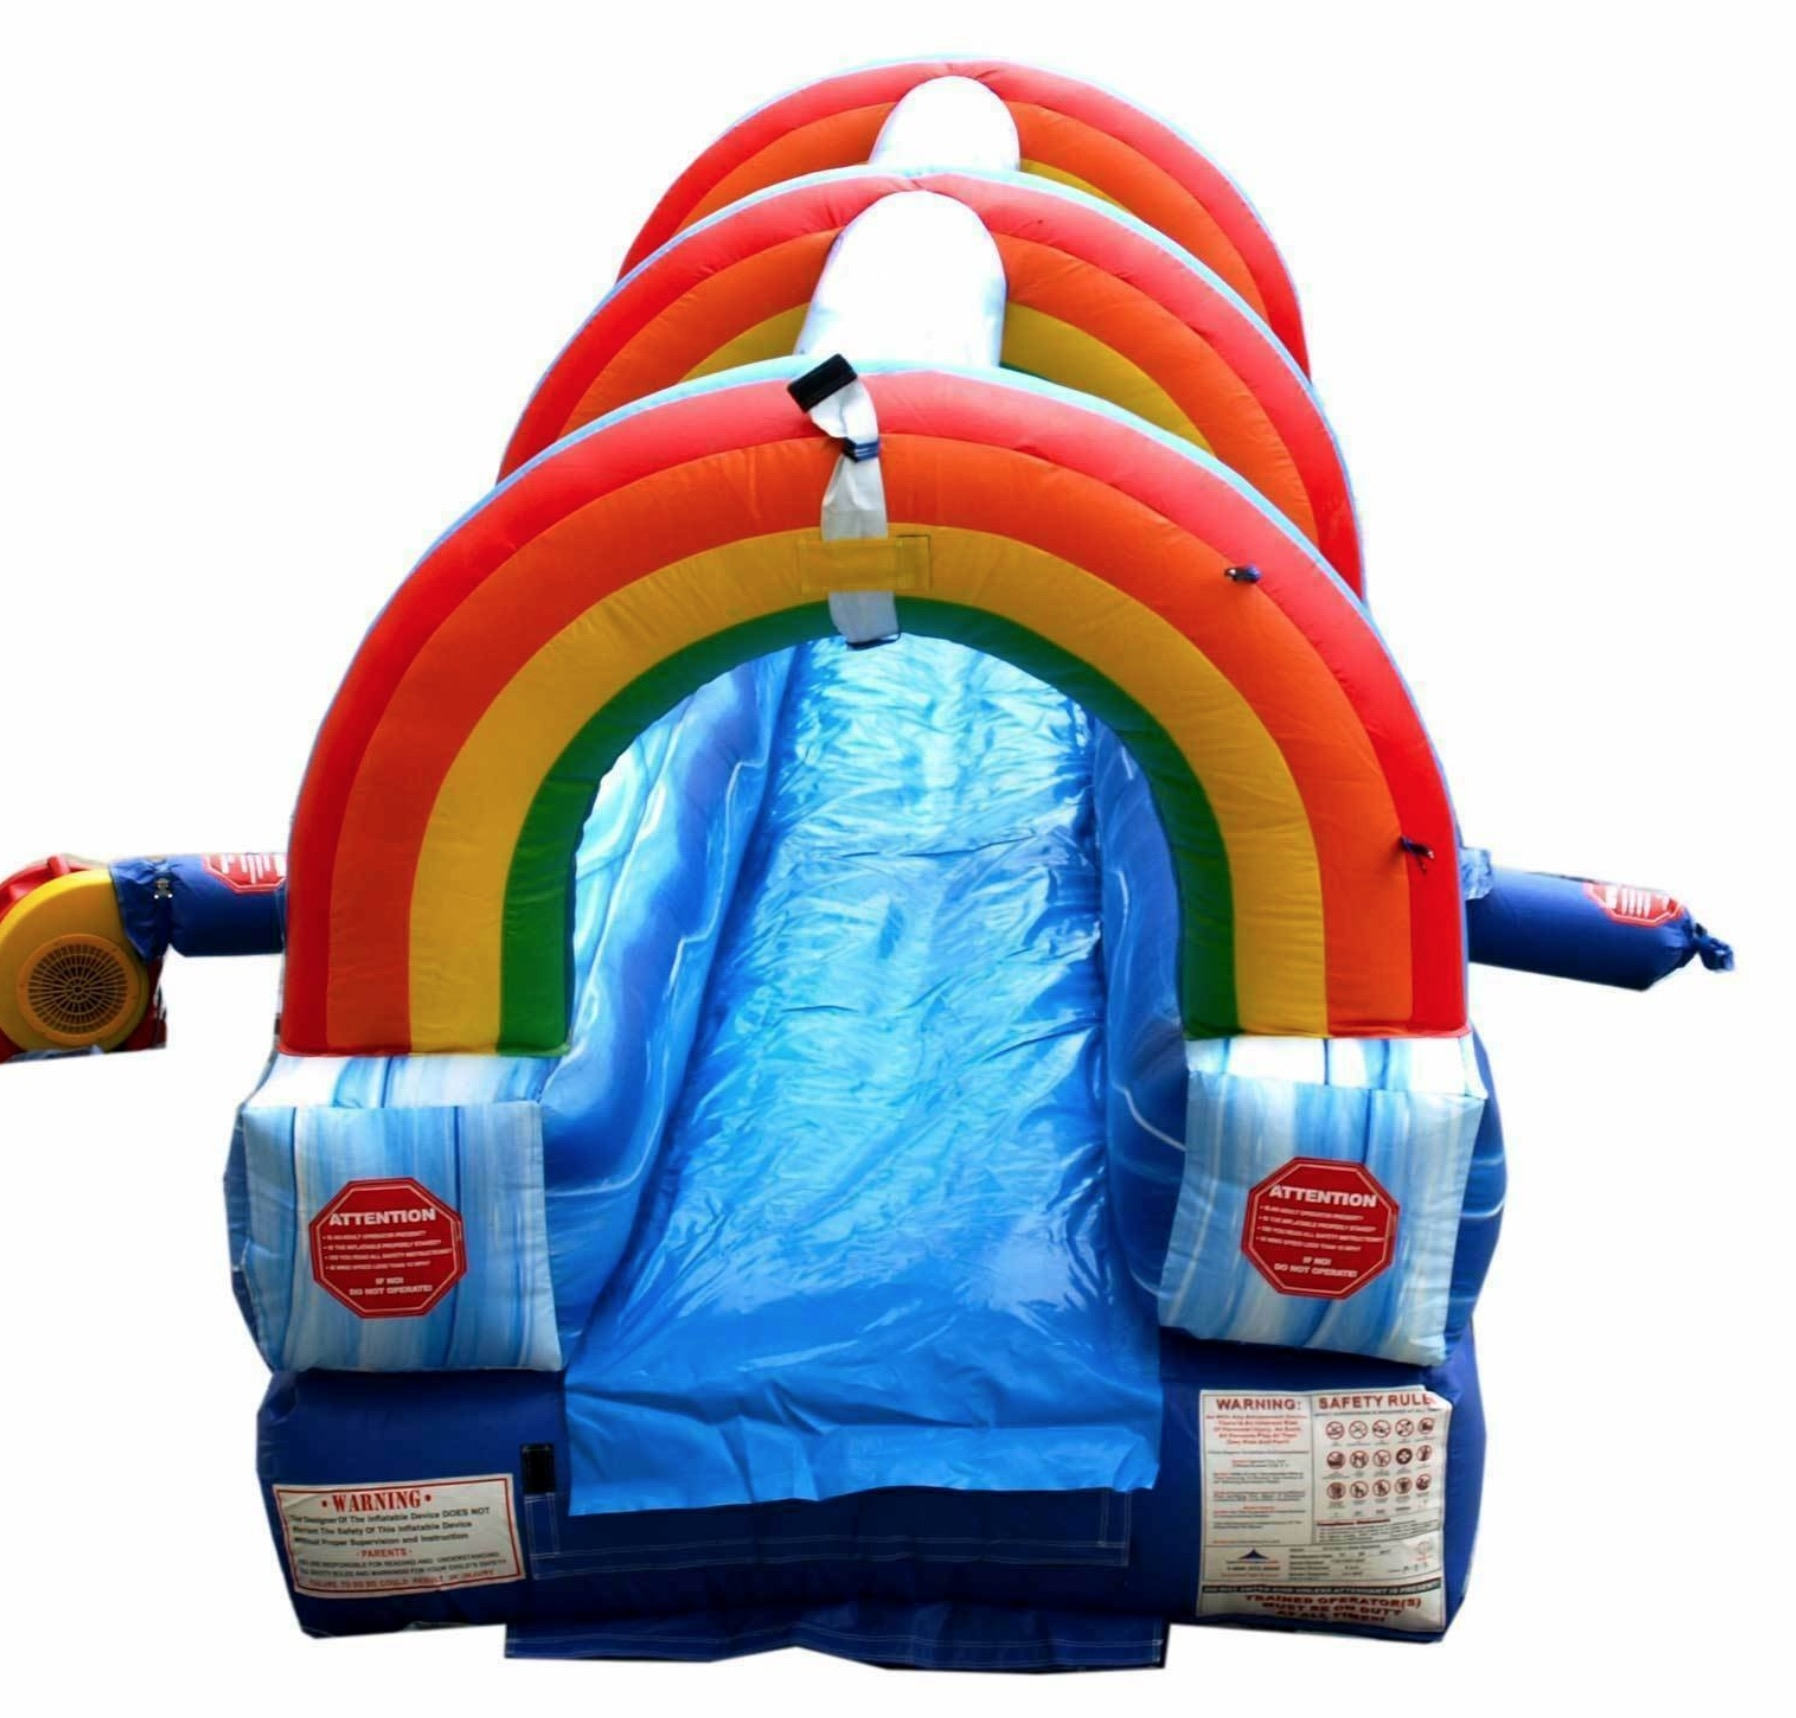 Water Slide Rainbow Slip N Slide Rentals Houston